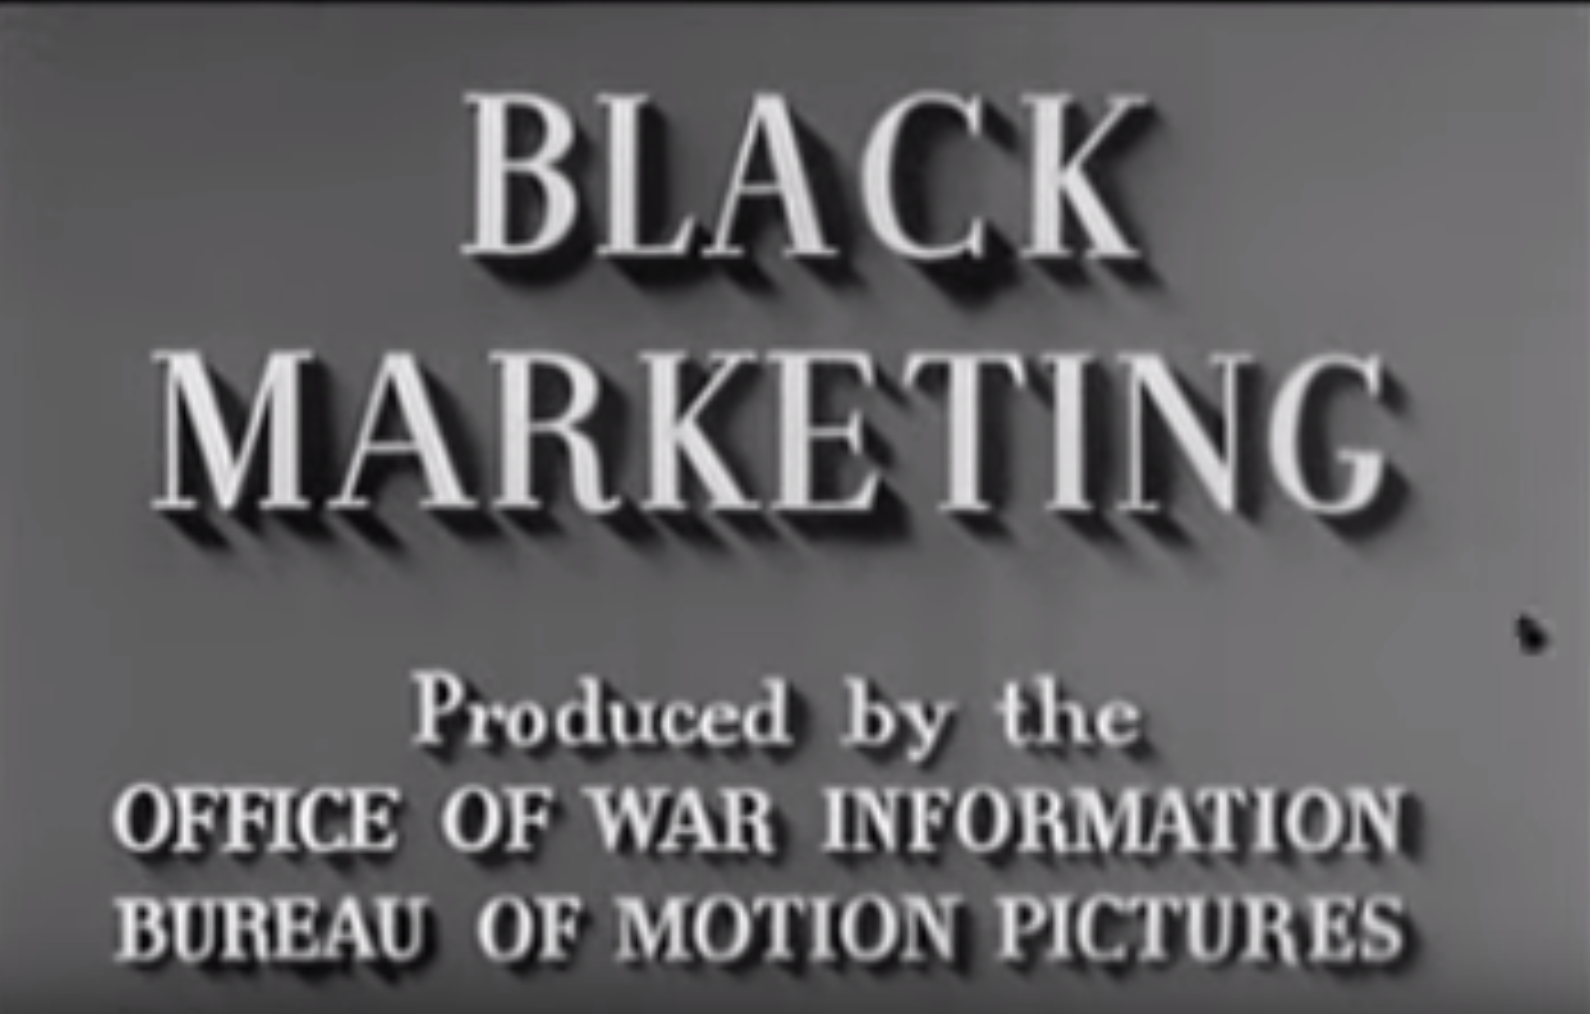 Black Marketing - 1940's